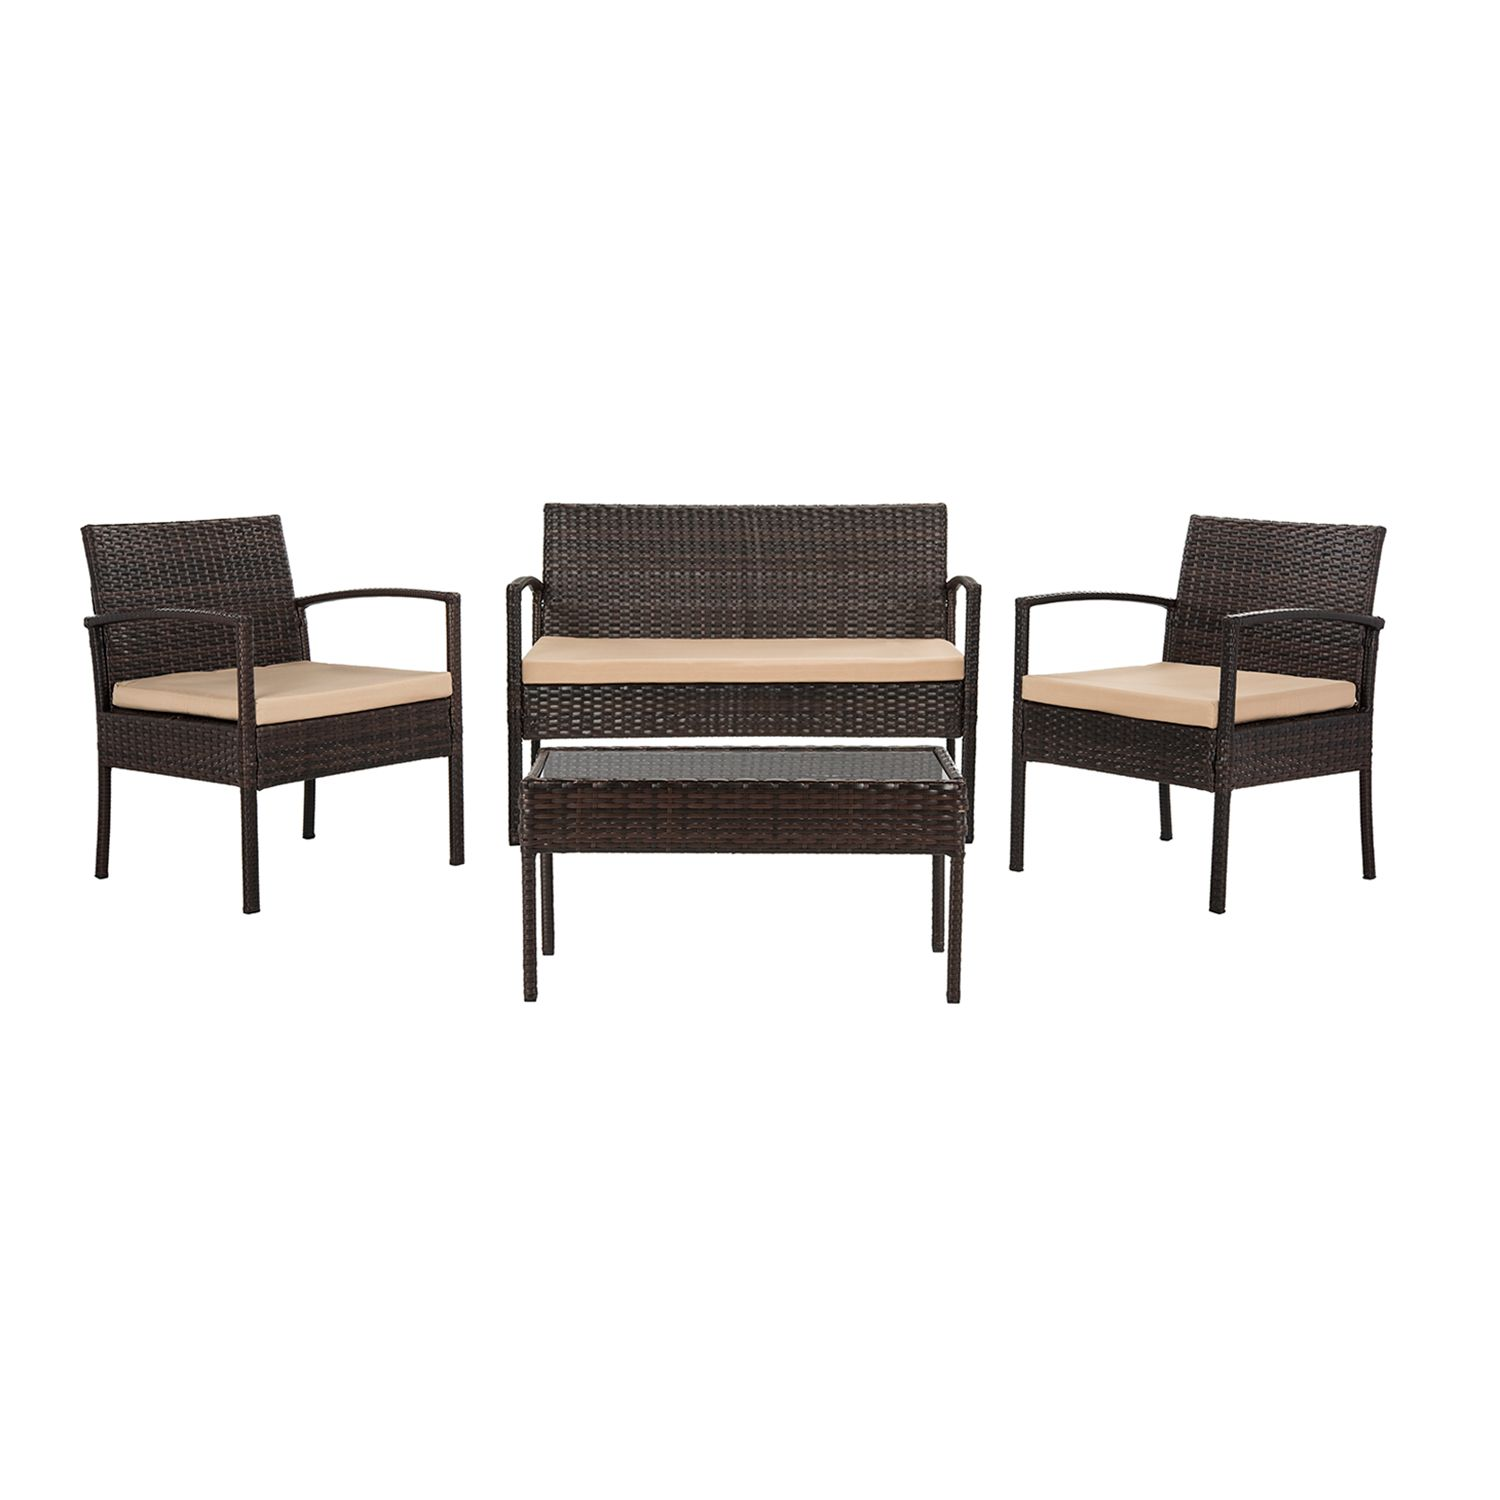 Beau Safavieh Mattia Indoor / Outdoor Loveseat, Chair U0026 Coffee Table 4 Piece Set